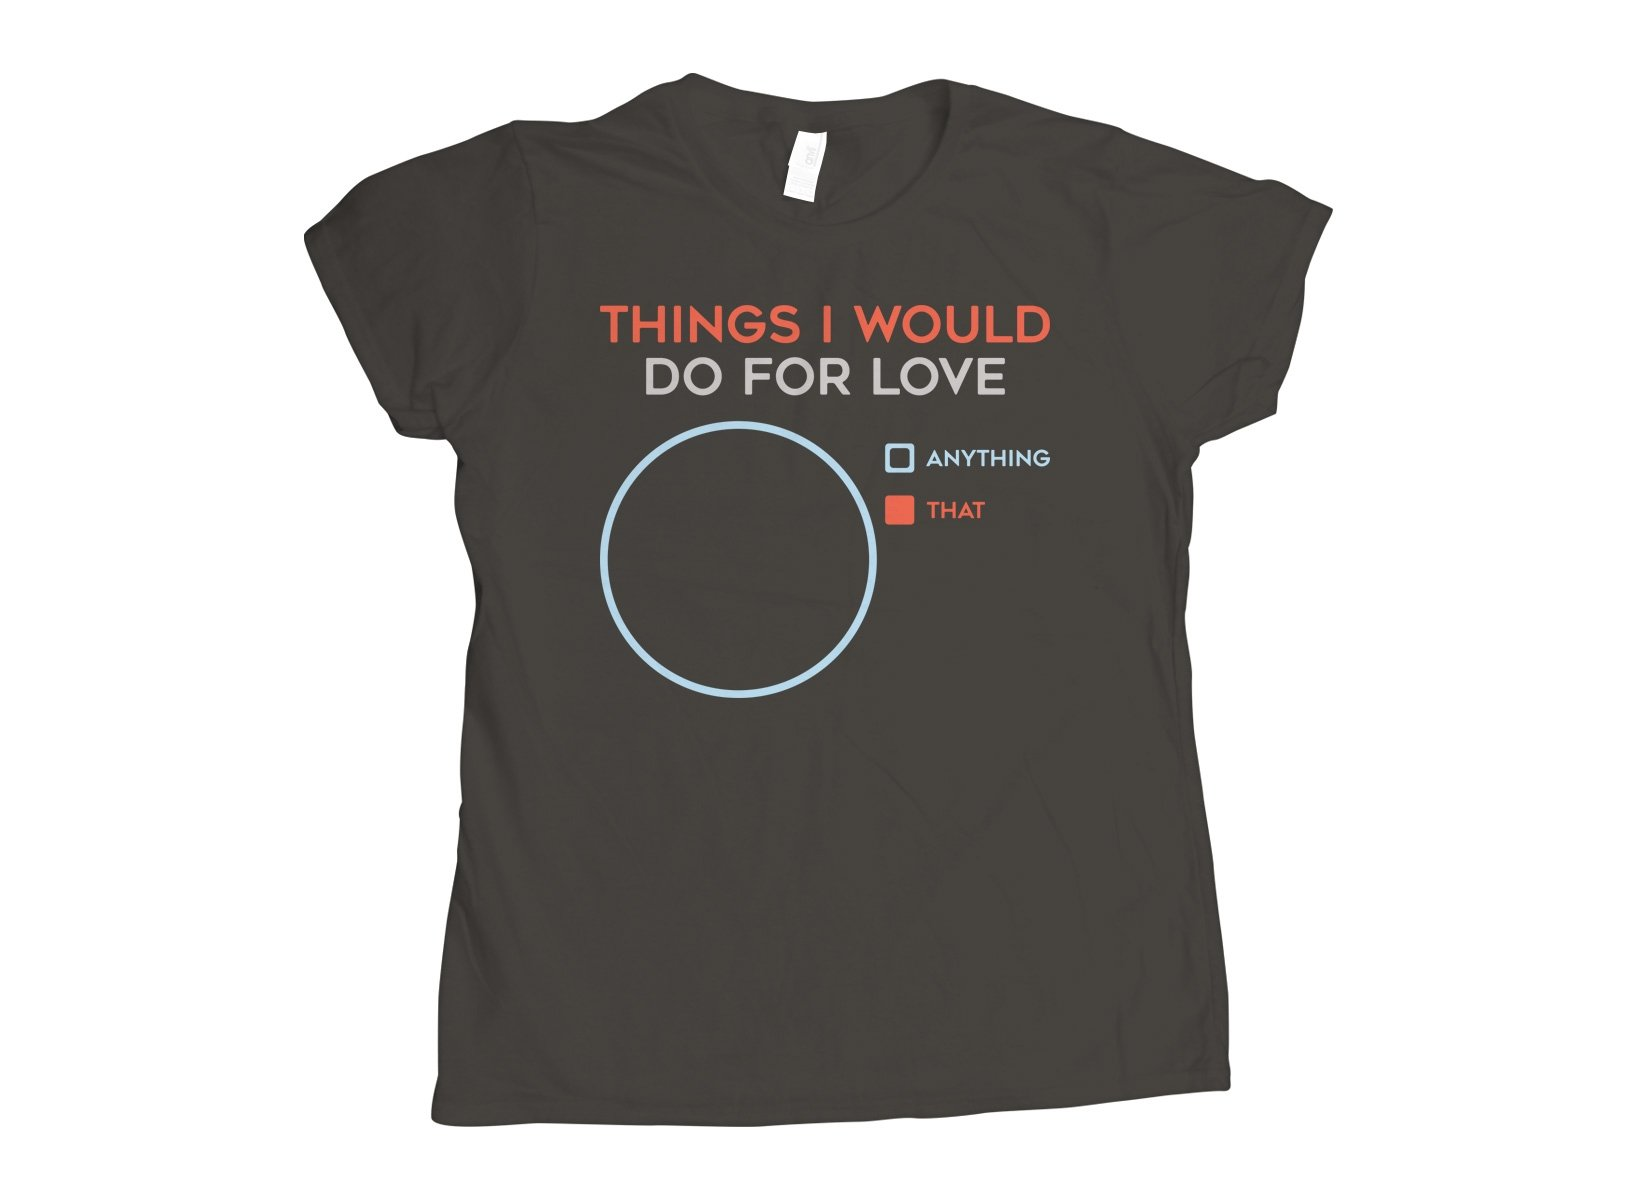 Things I Would Do For Love on Womens T-Shirt